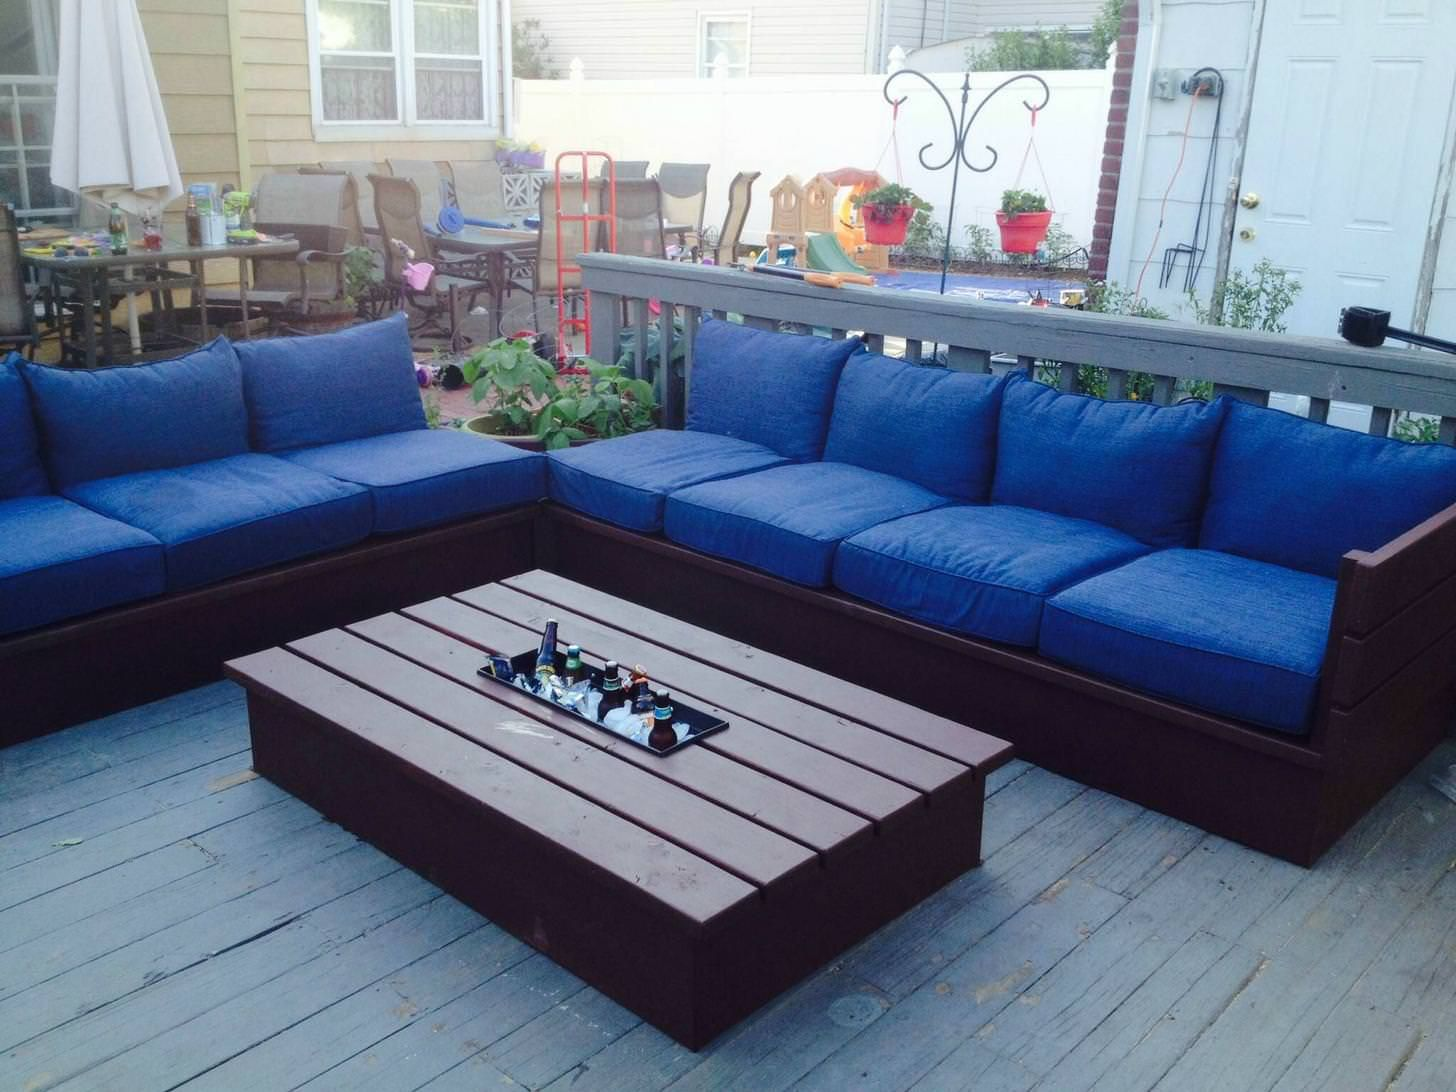 Final Product, plus an added table | Patio | Pinterest | Finals and ...